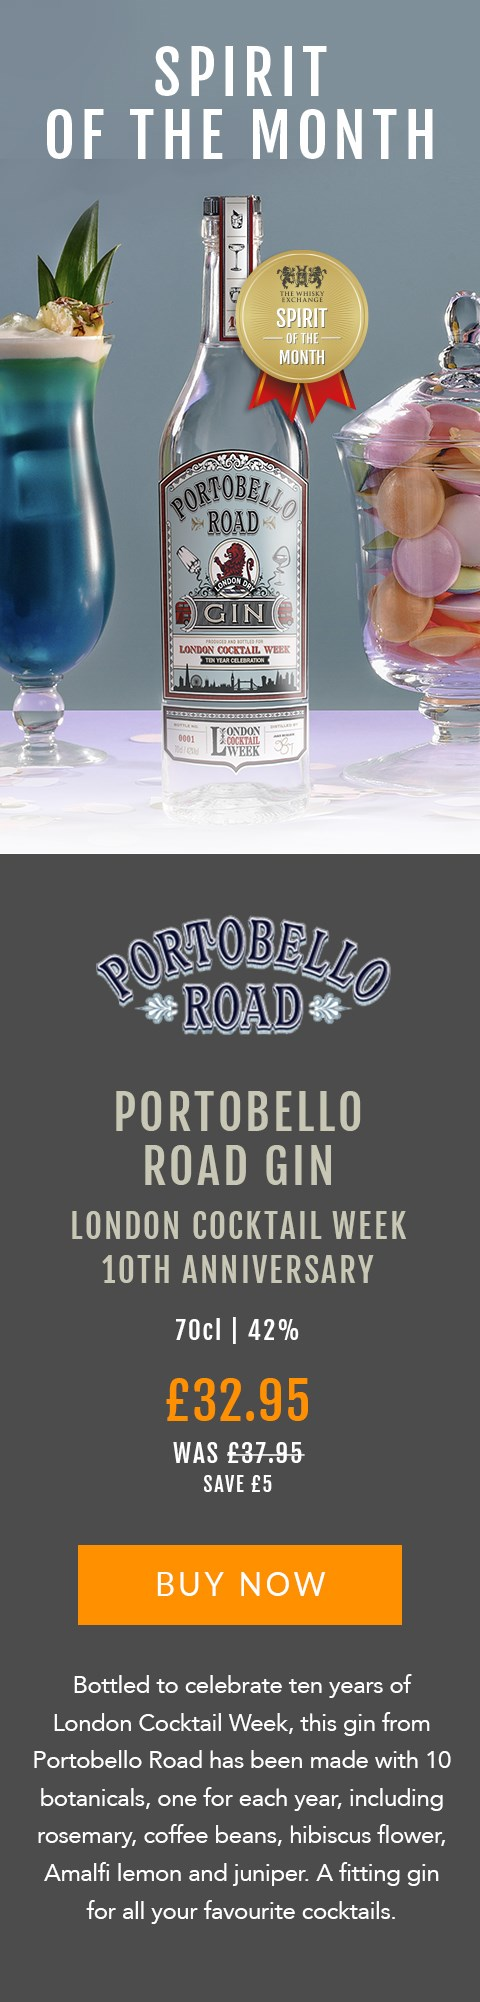 SPIRIT OF THE MONTH  Portobello Road Gin  London Cocktail Week 10th Anniversary   70cl | 42%  £32.95 (was £37.95)  Save £5  BUY NOW> https://www.thewhiskyexchange.com/feature/spiritofthemonth  Bottled to celebrate ten years of London Cocktail Week, this gin from Portobello Road has been made with 10 botanicals, one for each year, including rosemary, coffee beans, hibiscus flower, Amalfi lemon and juniper. A fitting gin for all your favourite cocktails.